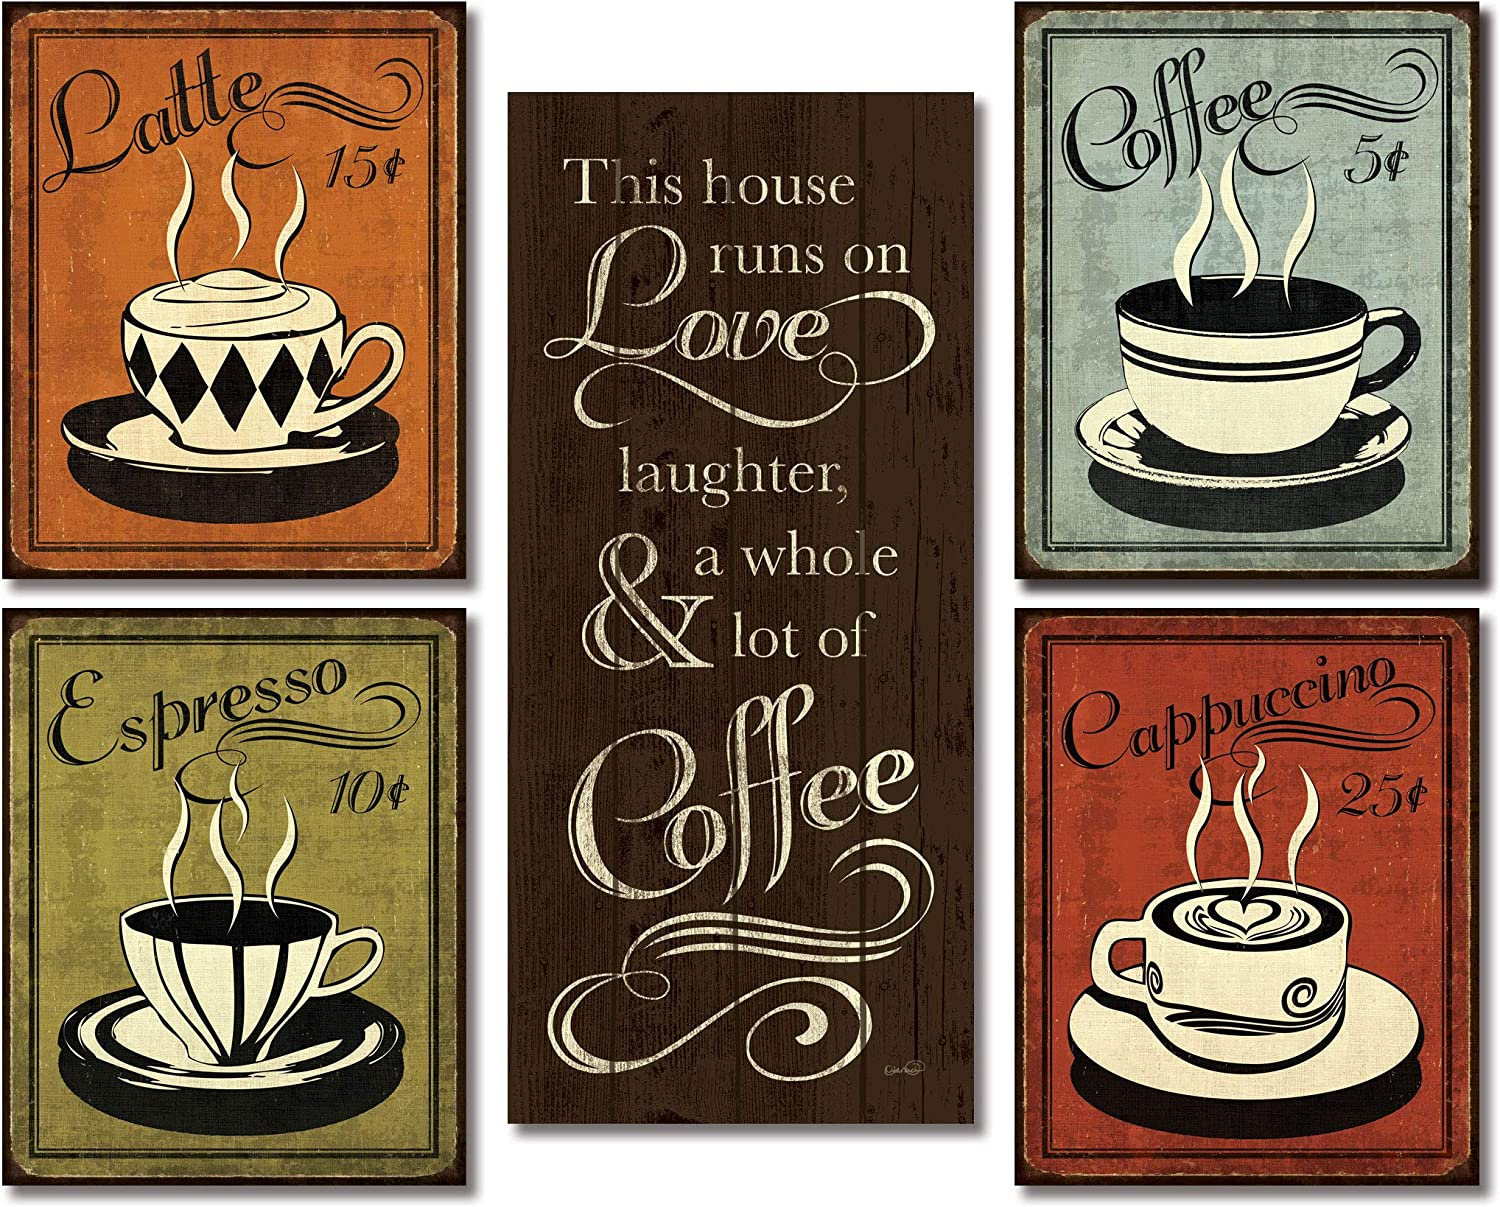 Coffee Cup making Vintage Kraft Paper Wall Decor Poster 51*36 cm 20*14 in